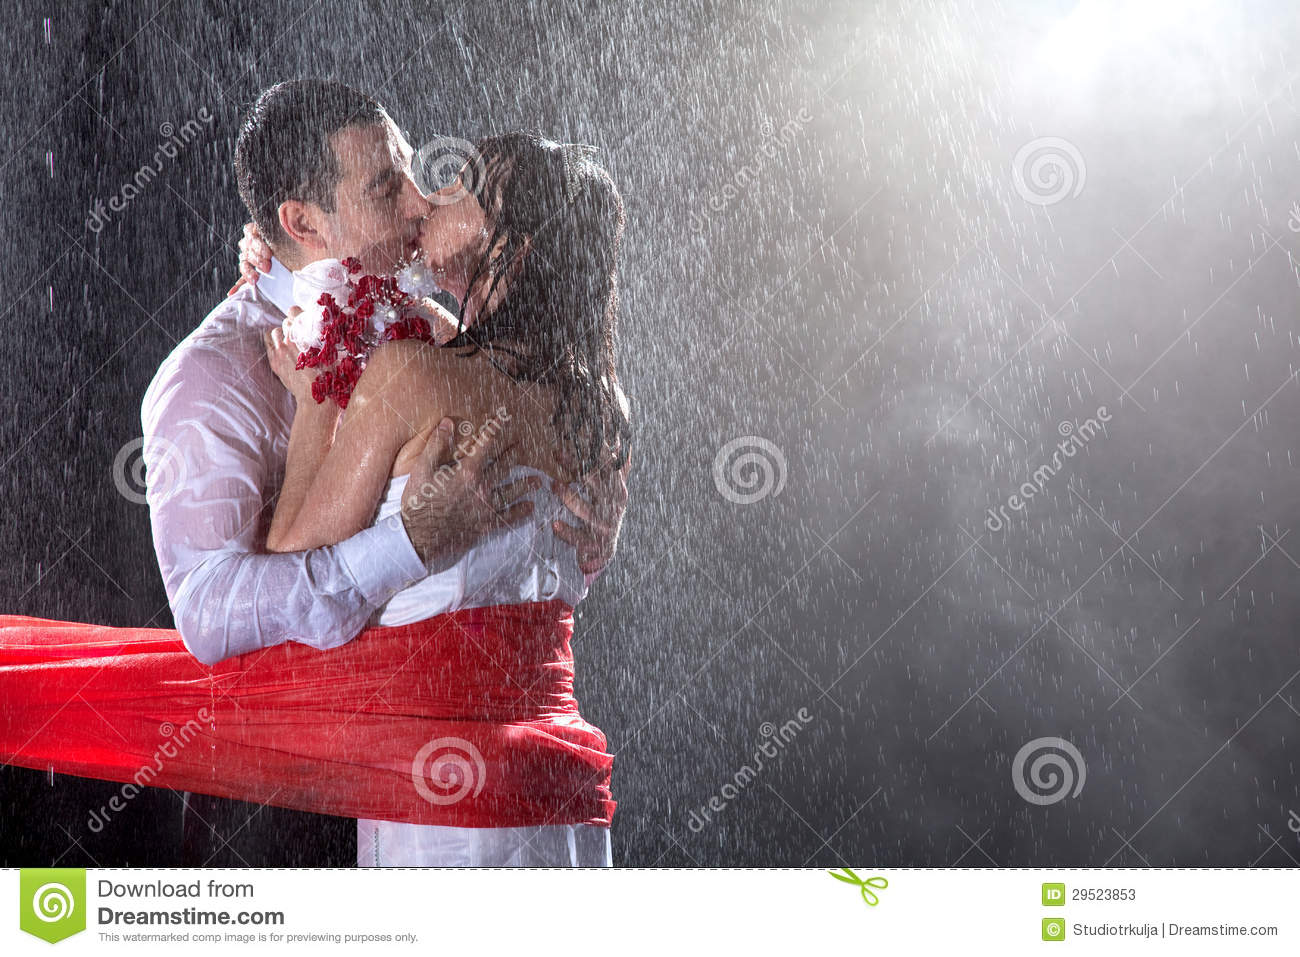 Images Of Lovers In Rain: Happy Wedding Lovers On Strong Rain Stock Photos